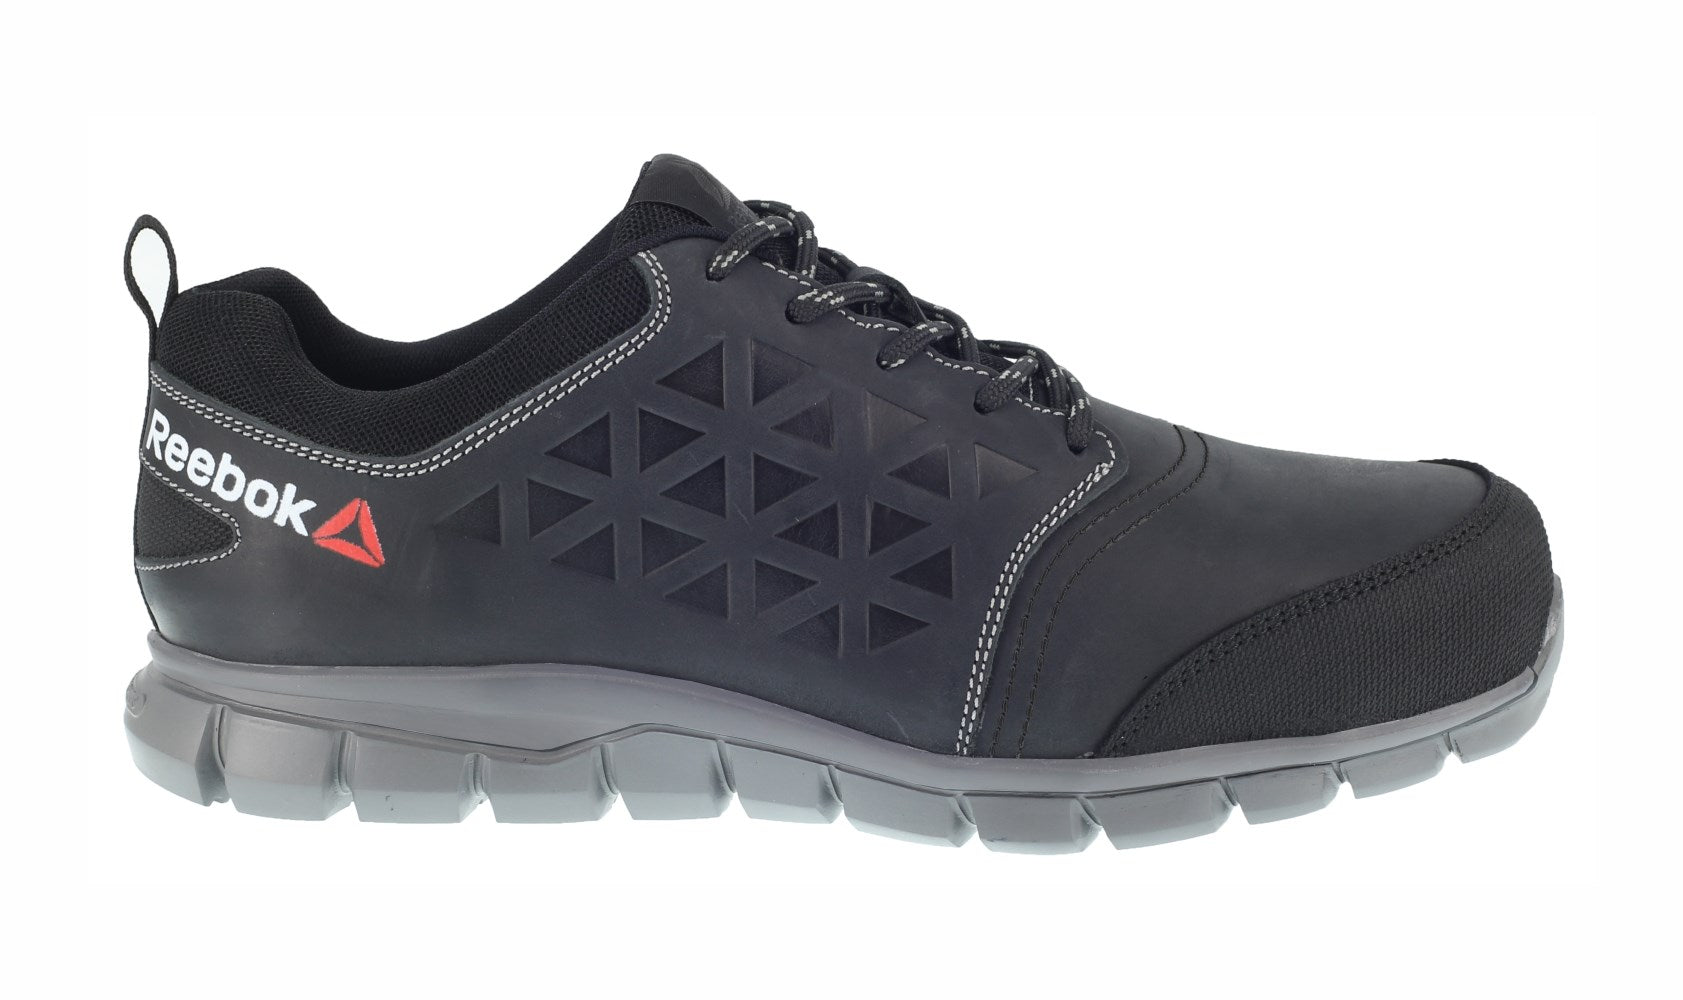 reebok safety trainers uk off 50% - www